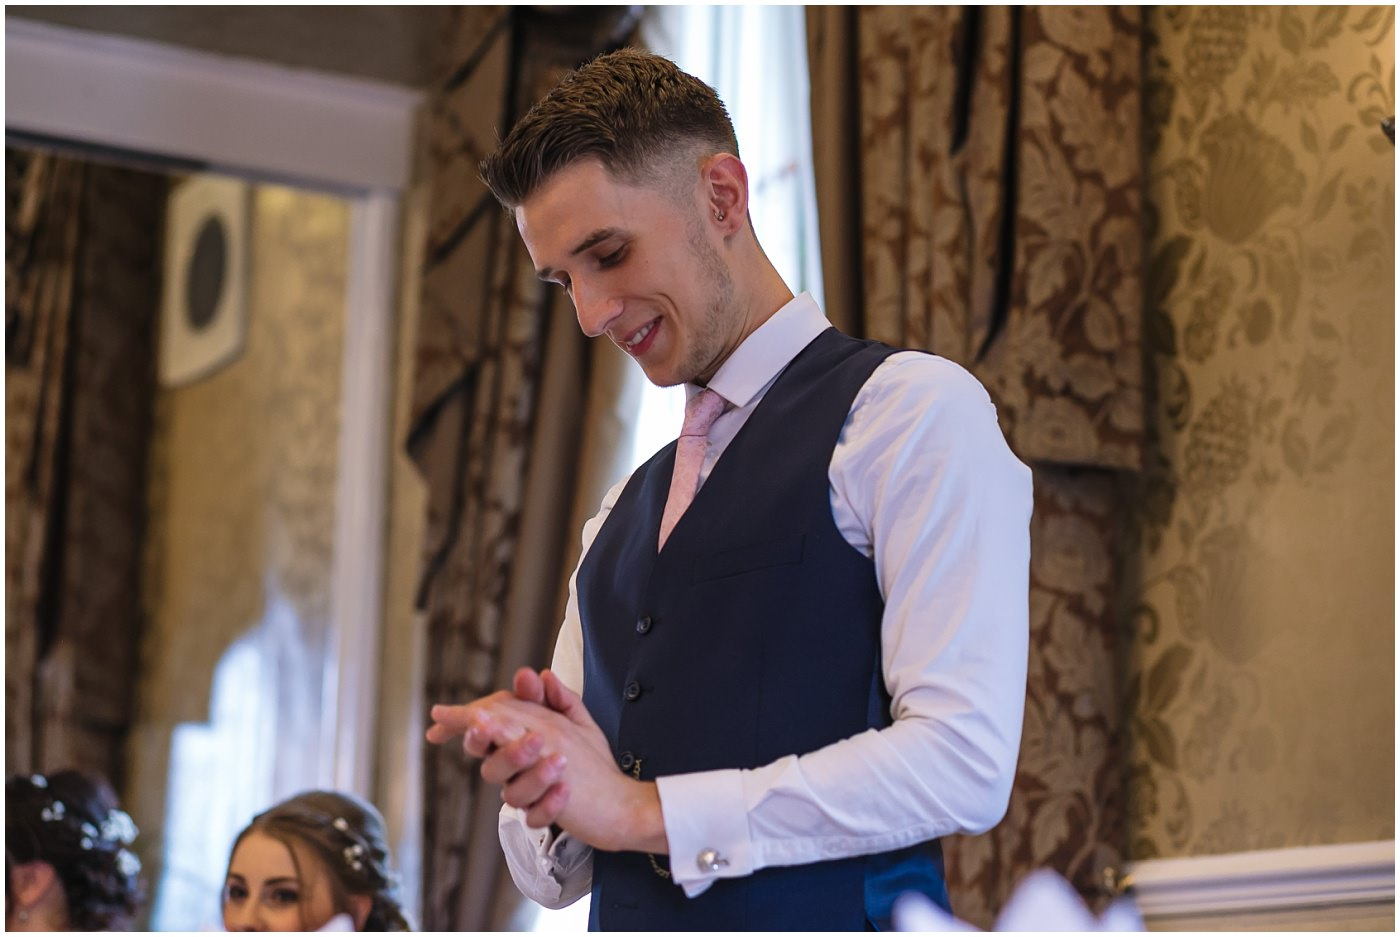 groom nervously gives his wedding speech